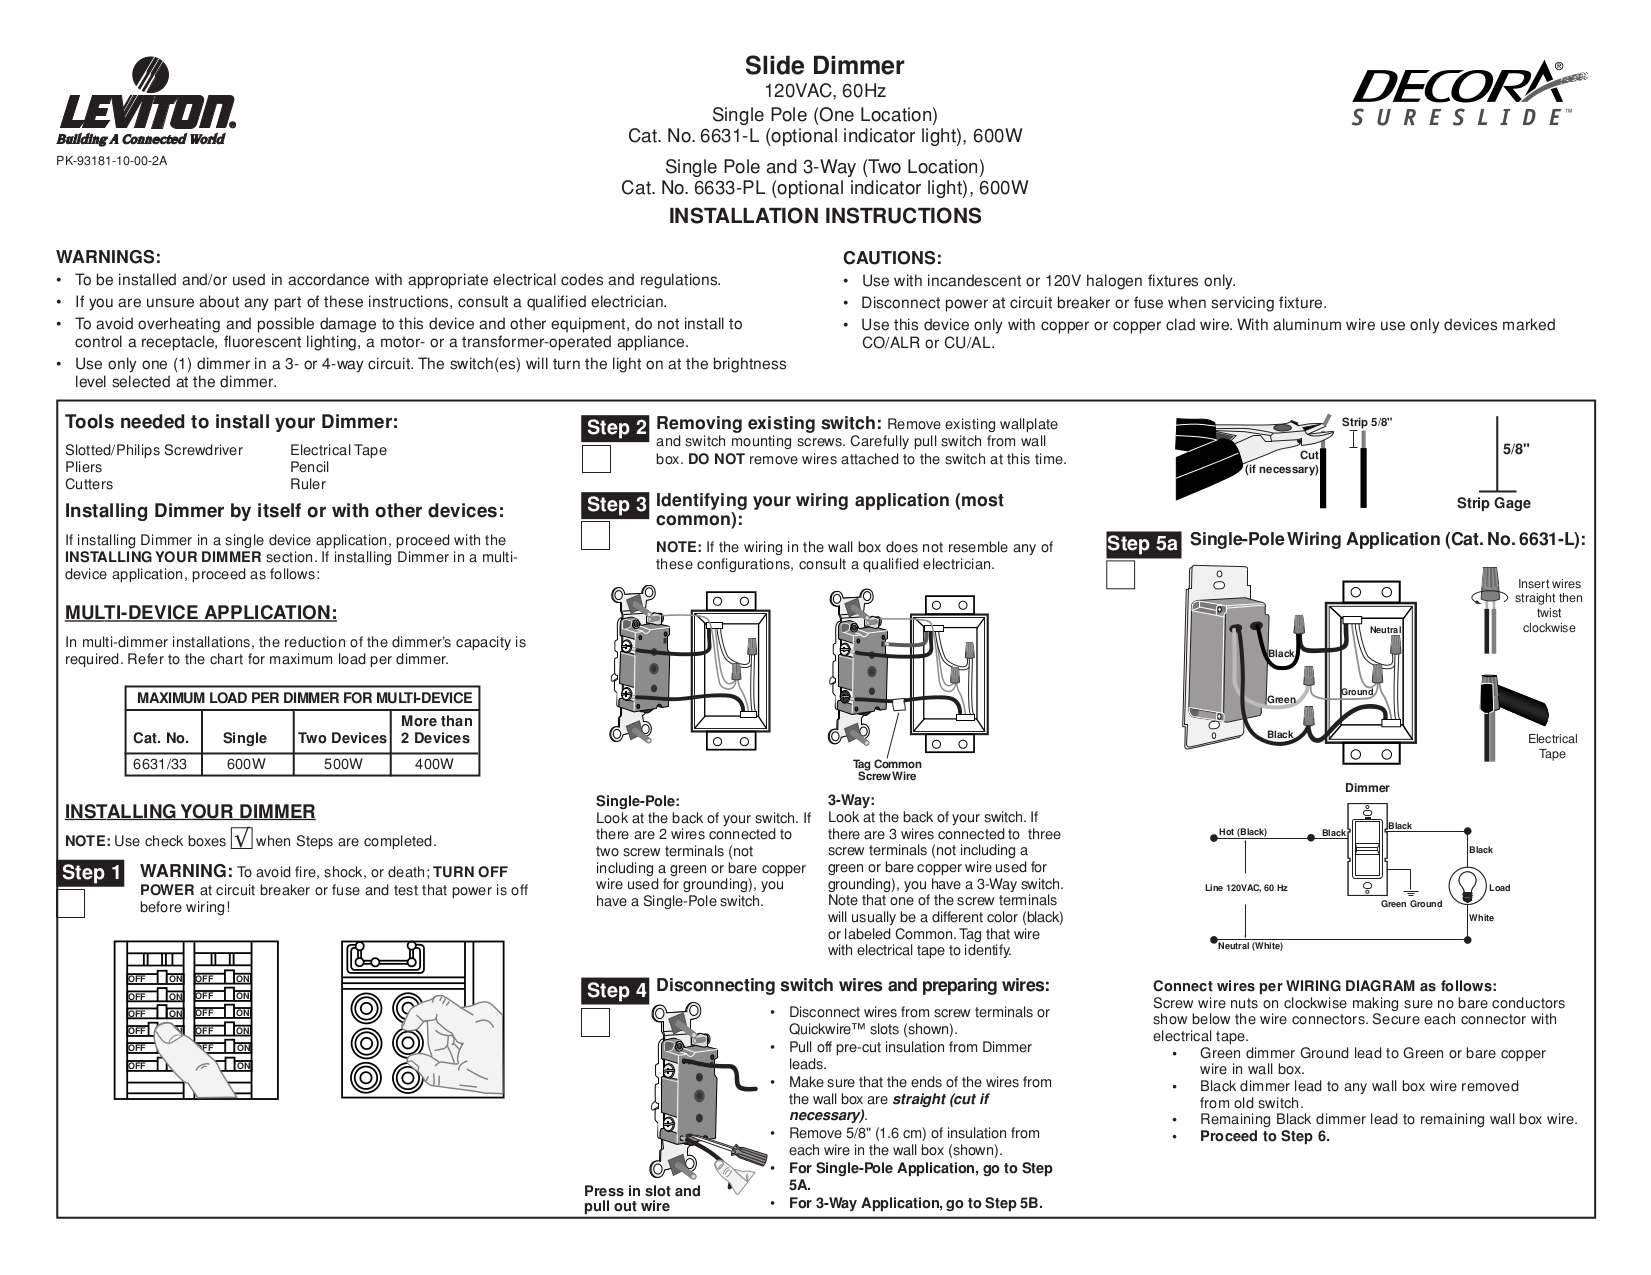 pdf 0 download free pdf for leviton sureslide 6631 l dimmers other manual leviton slide dimmer switch wiring diagram at gsmx.co